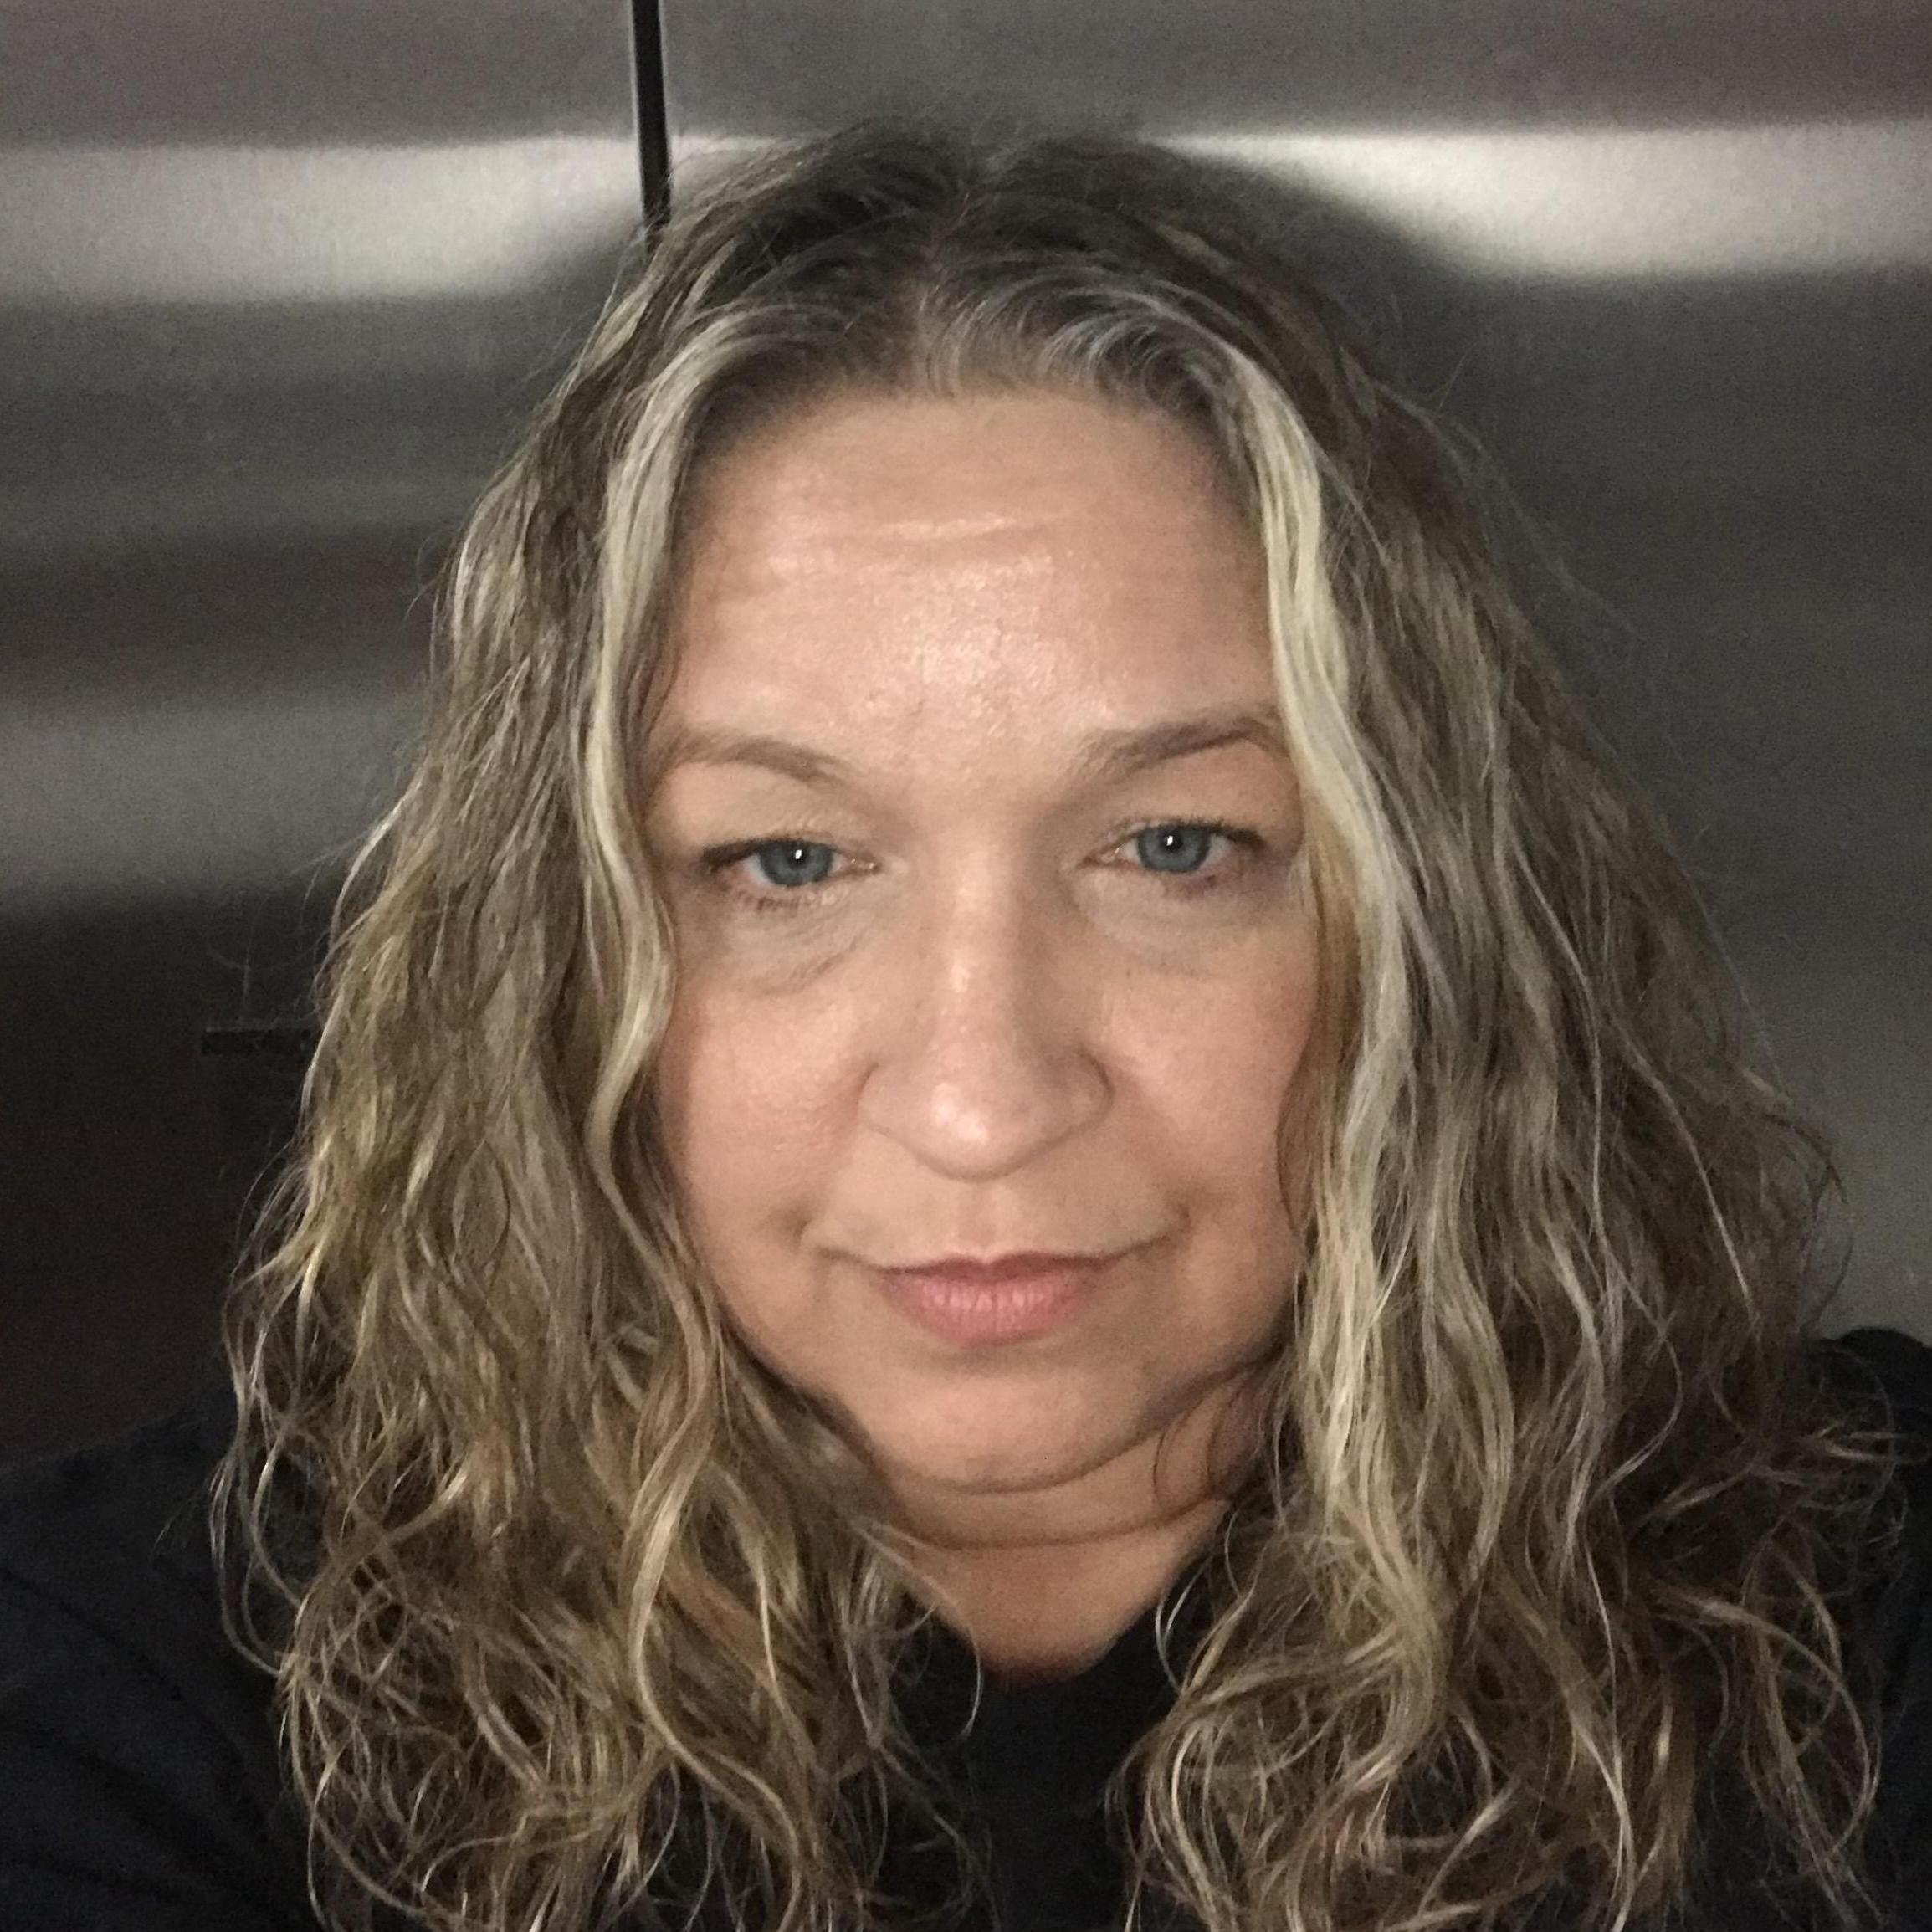 Stacey Allen's Profile Photo